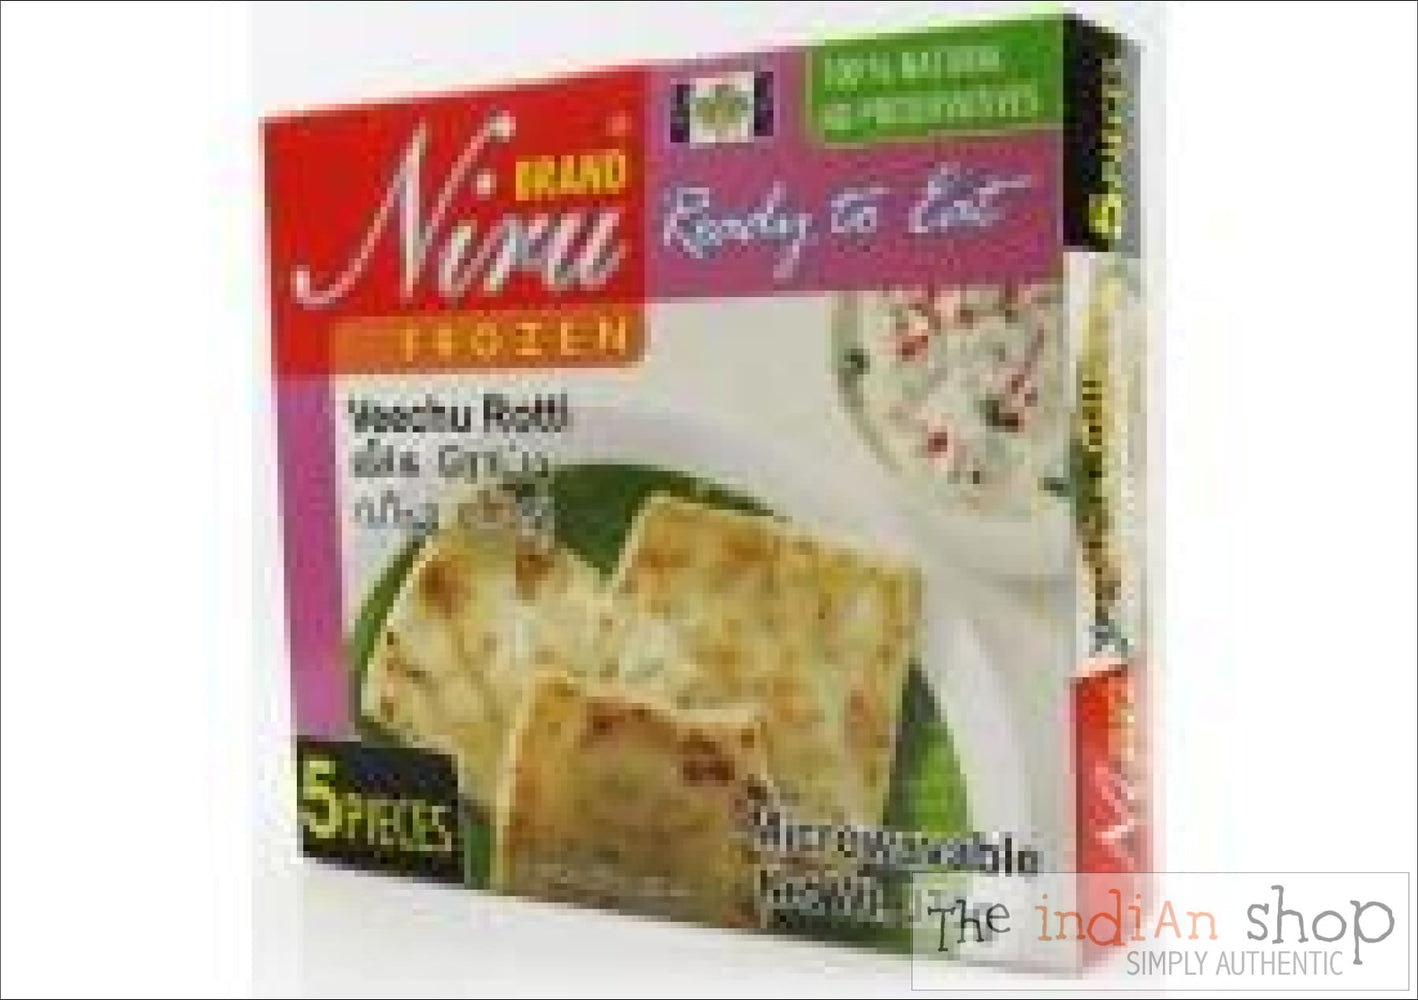 Niru Veechu Paratha - 375 g - Frozen Indian Breads